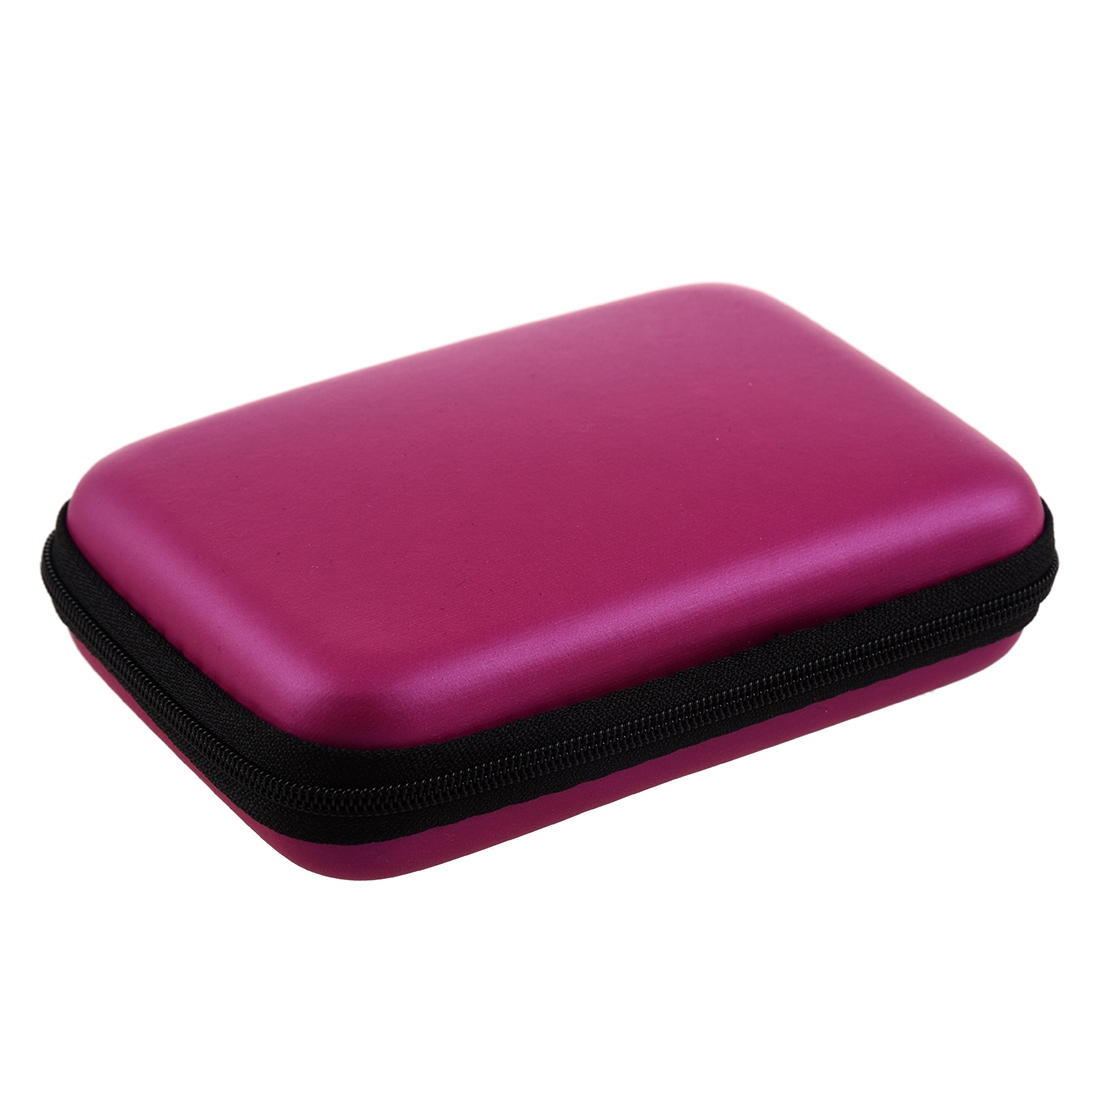 Portable Hard Disk Drive Shockproof Zipper Cover Bag Case 2.5 HDD Bag rose Red ...